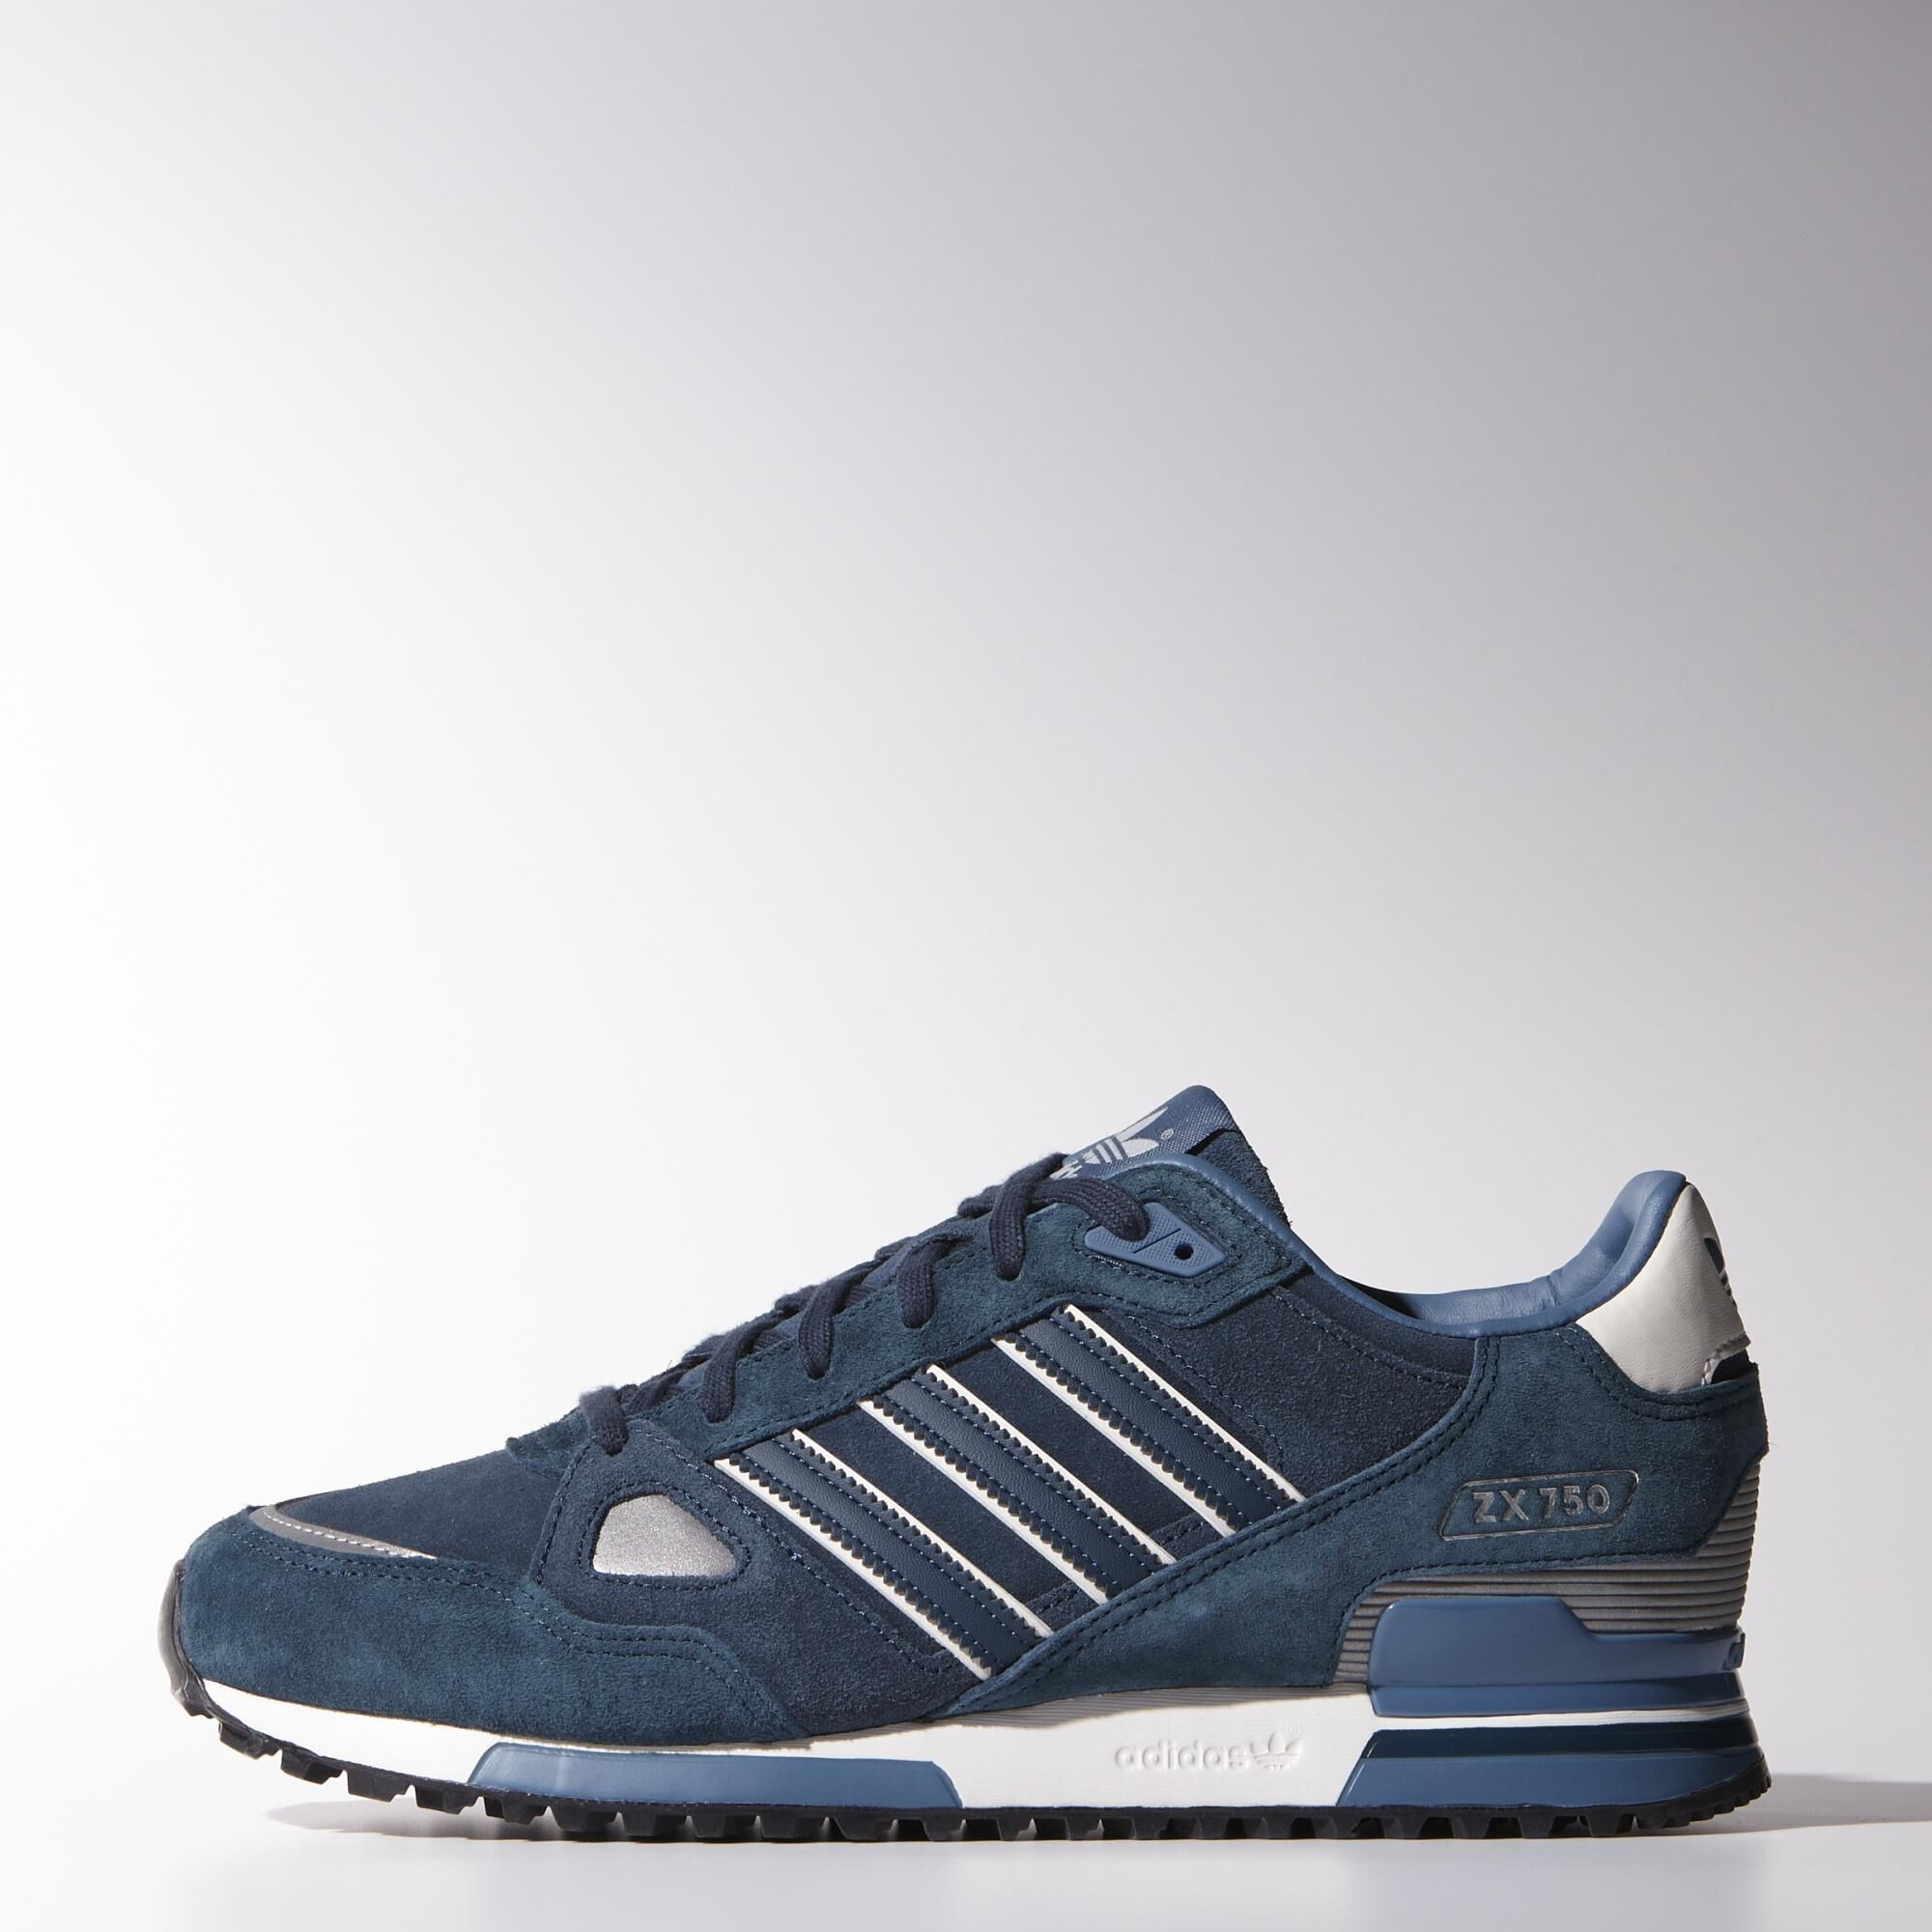 zx 750 adidas shoes